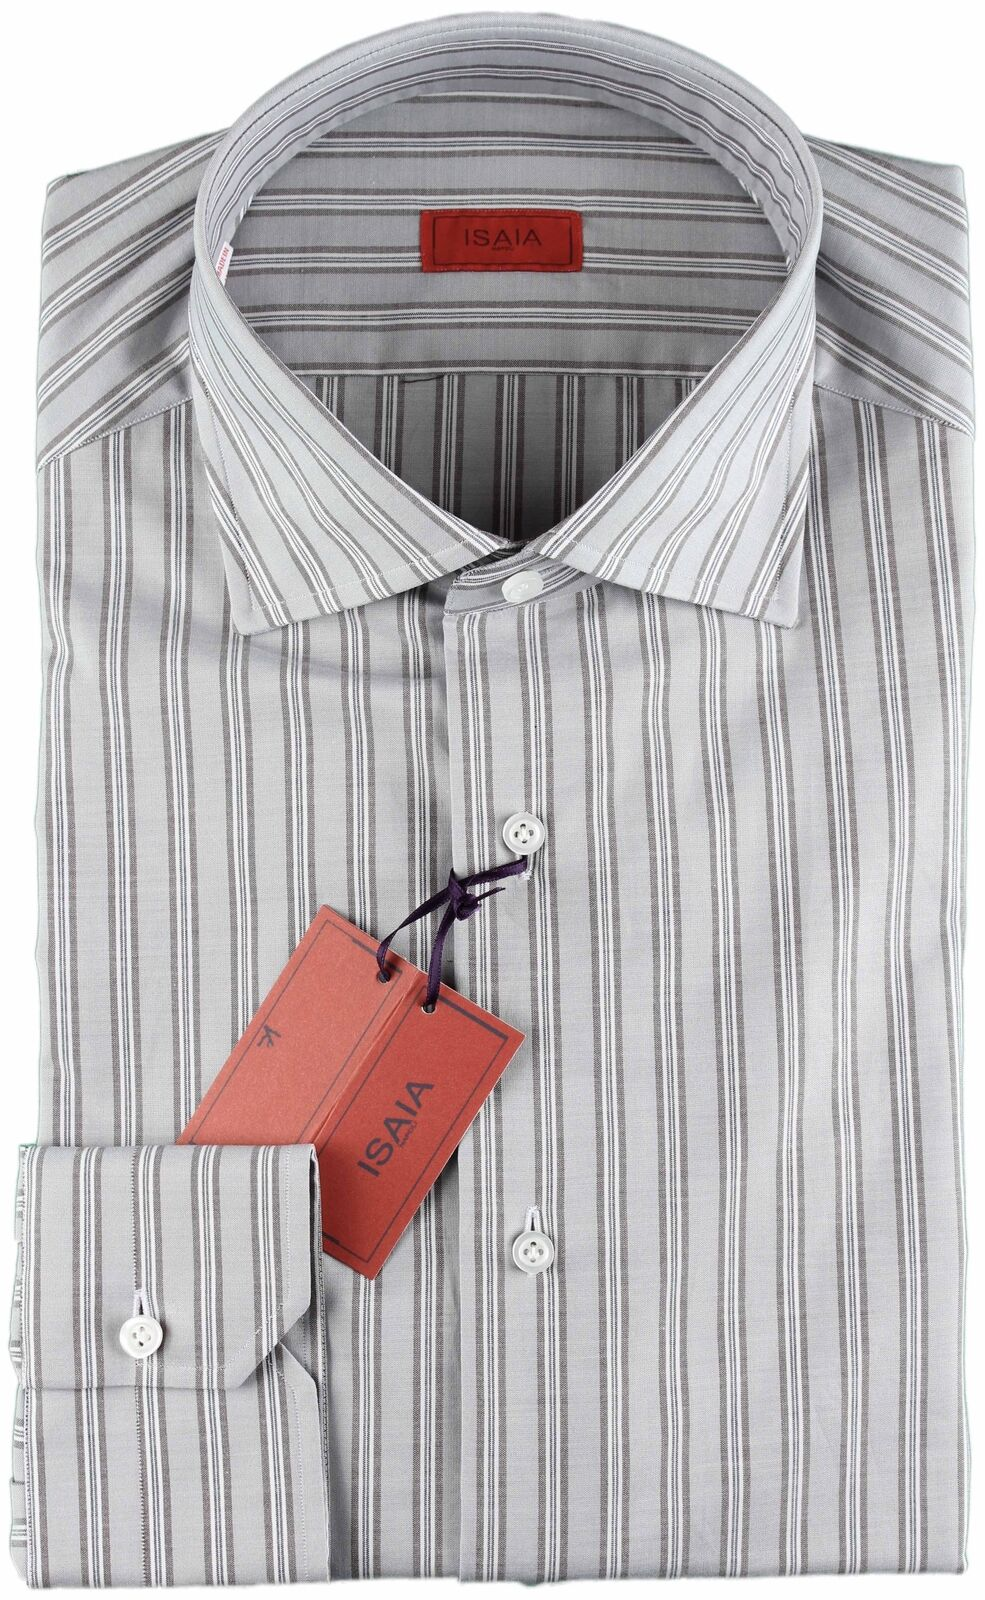 NWT ISAIA SHIRT Grau & Weiß striped luxury spread handmade  40 15 3/4